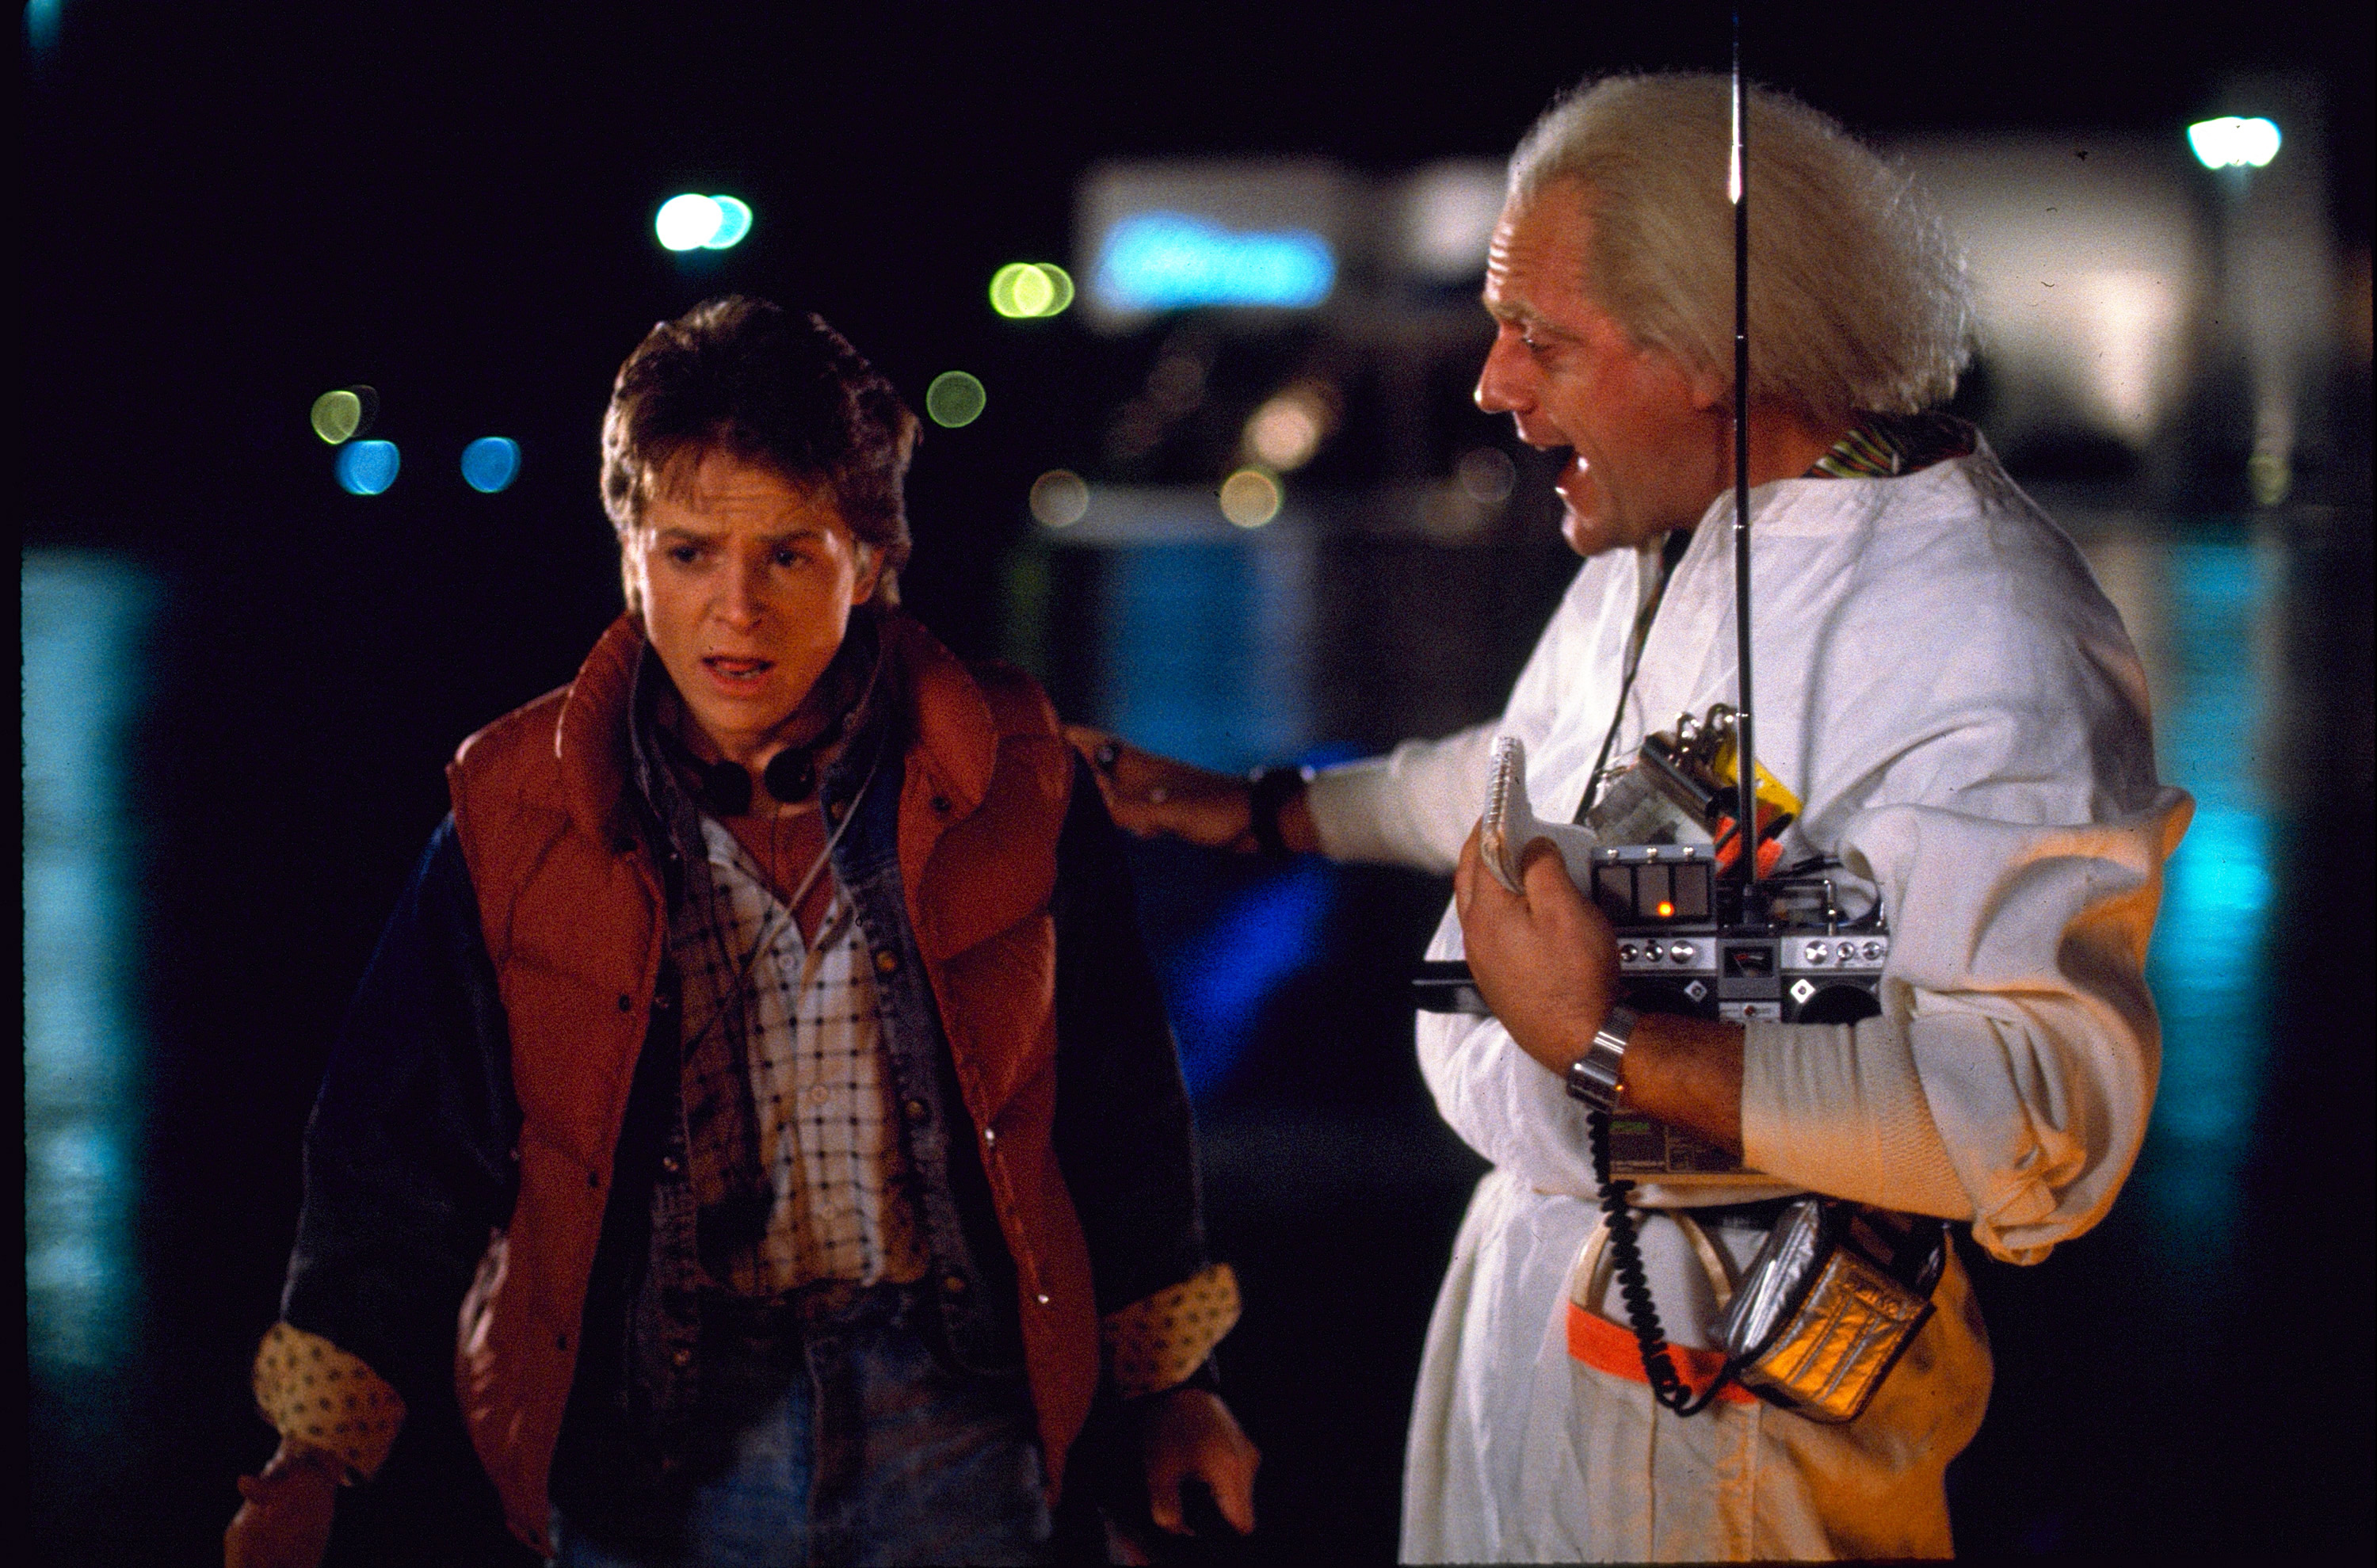 For Back to the Future Day, you can converse with Doc Brown